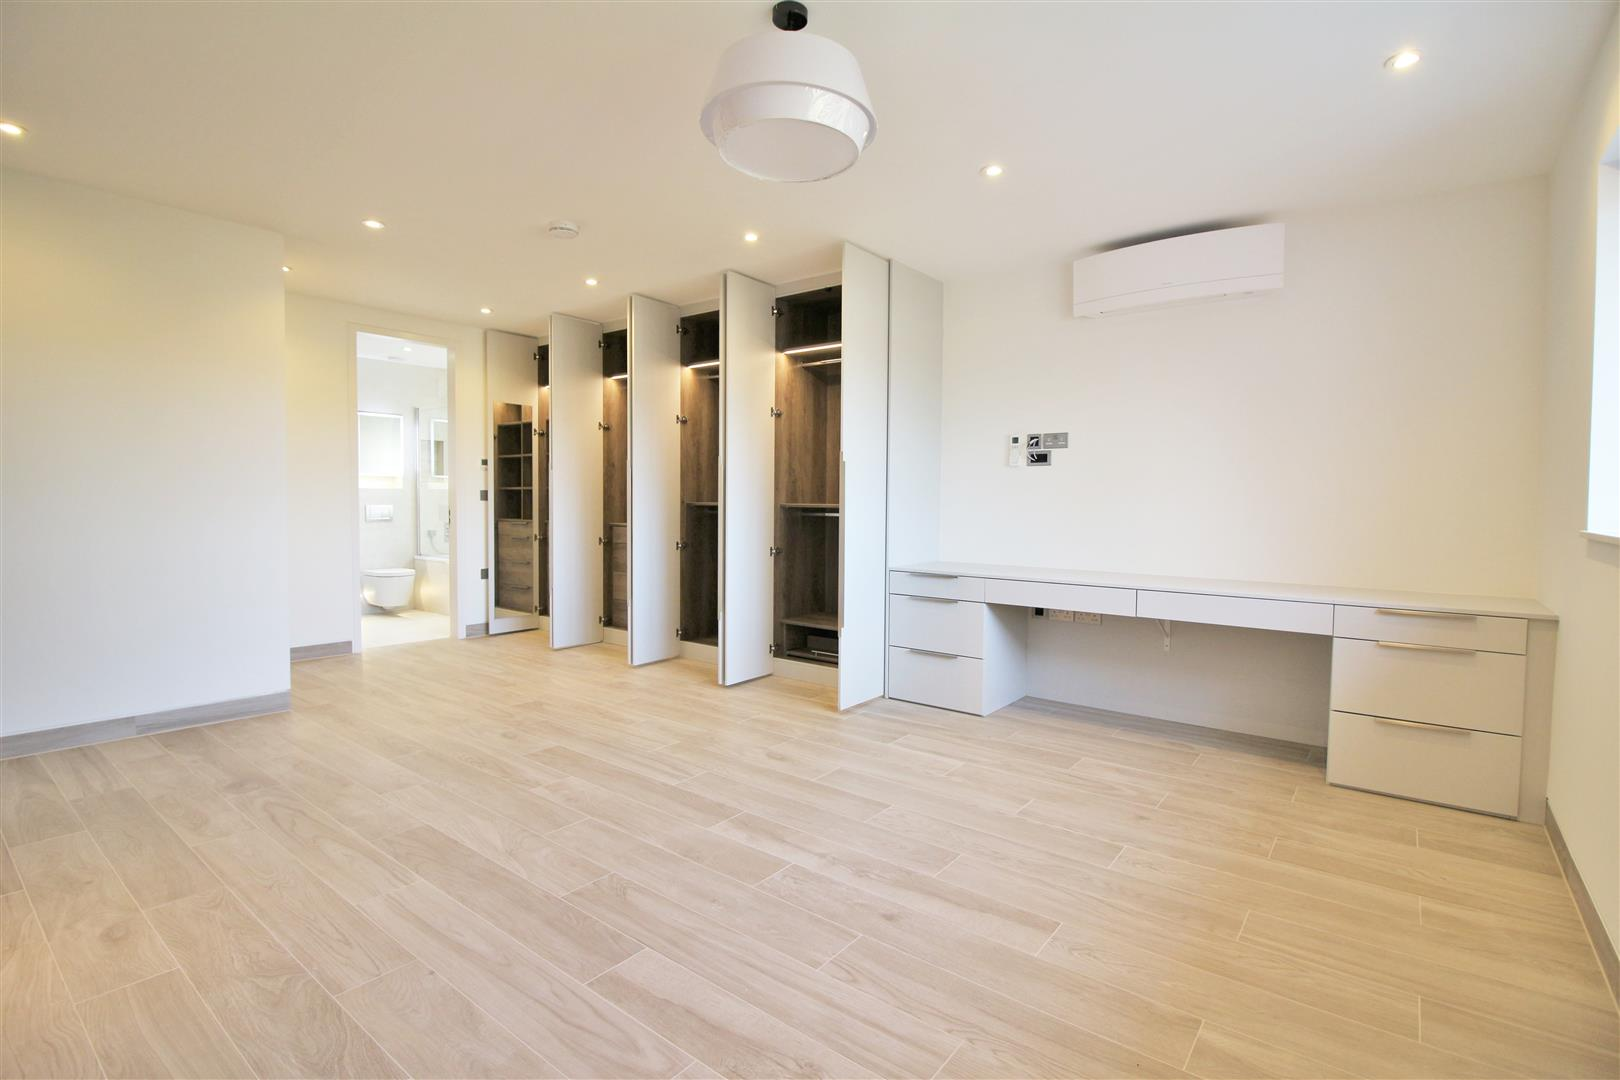 7 bed to rent - (Property Image 14)